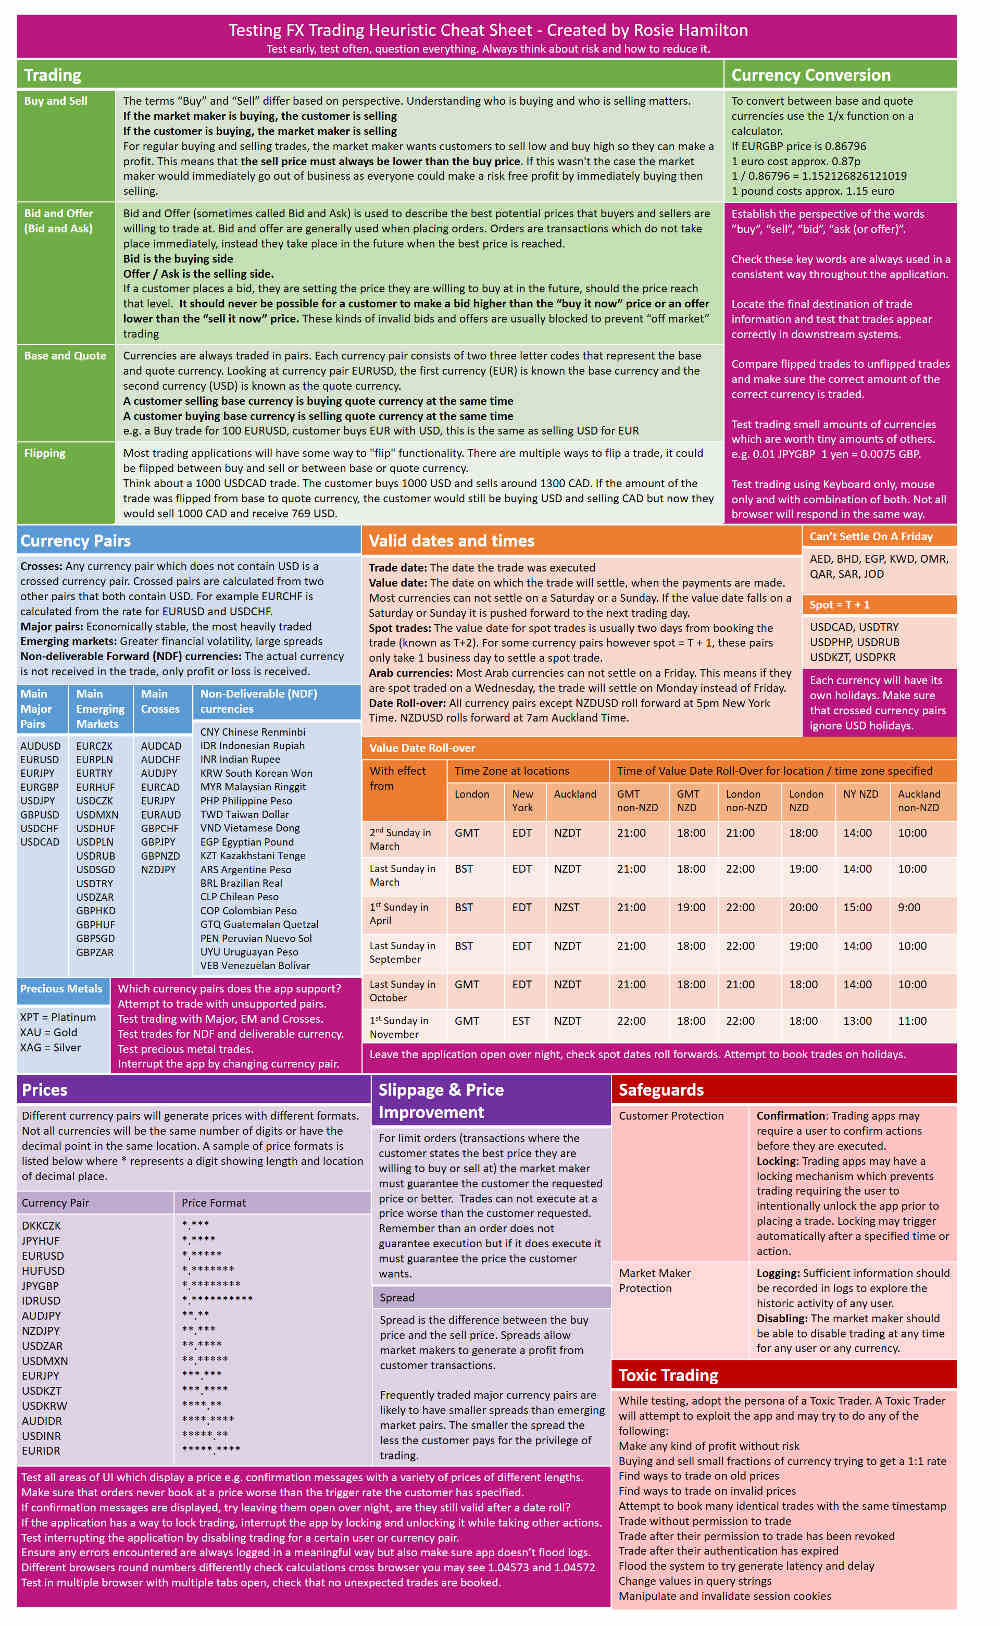 Foreign Currency Trading Heuristic Testing Cheat Sheet